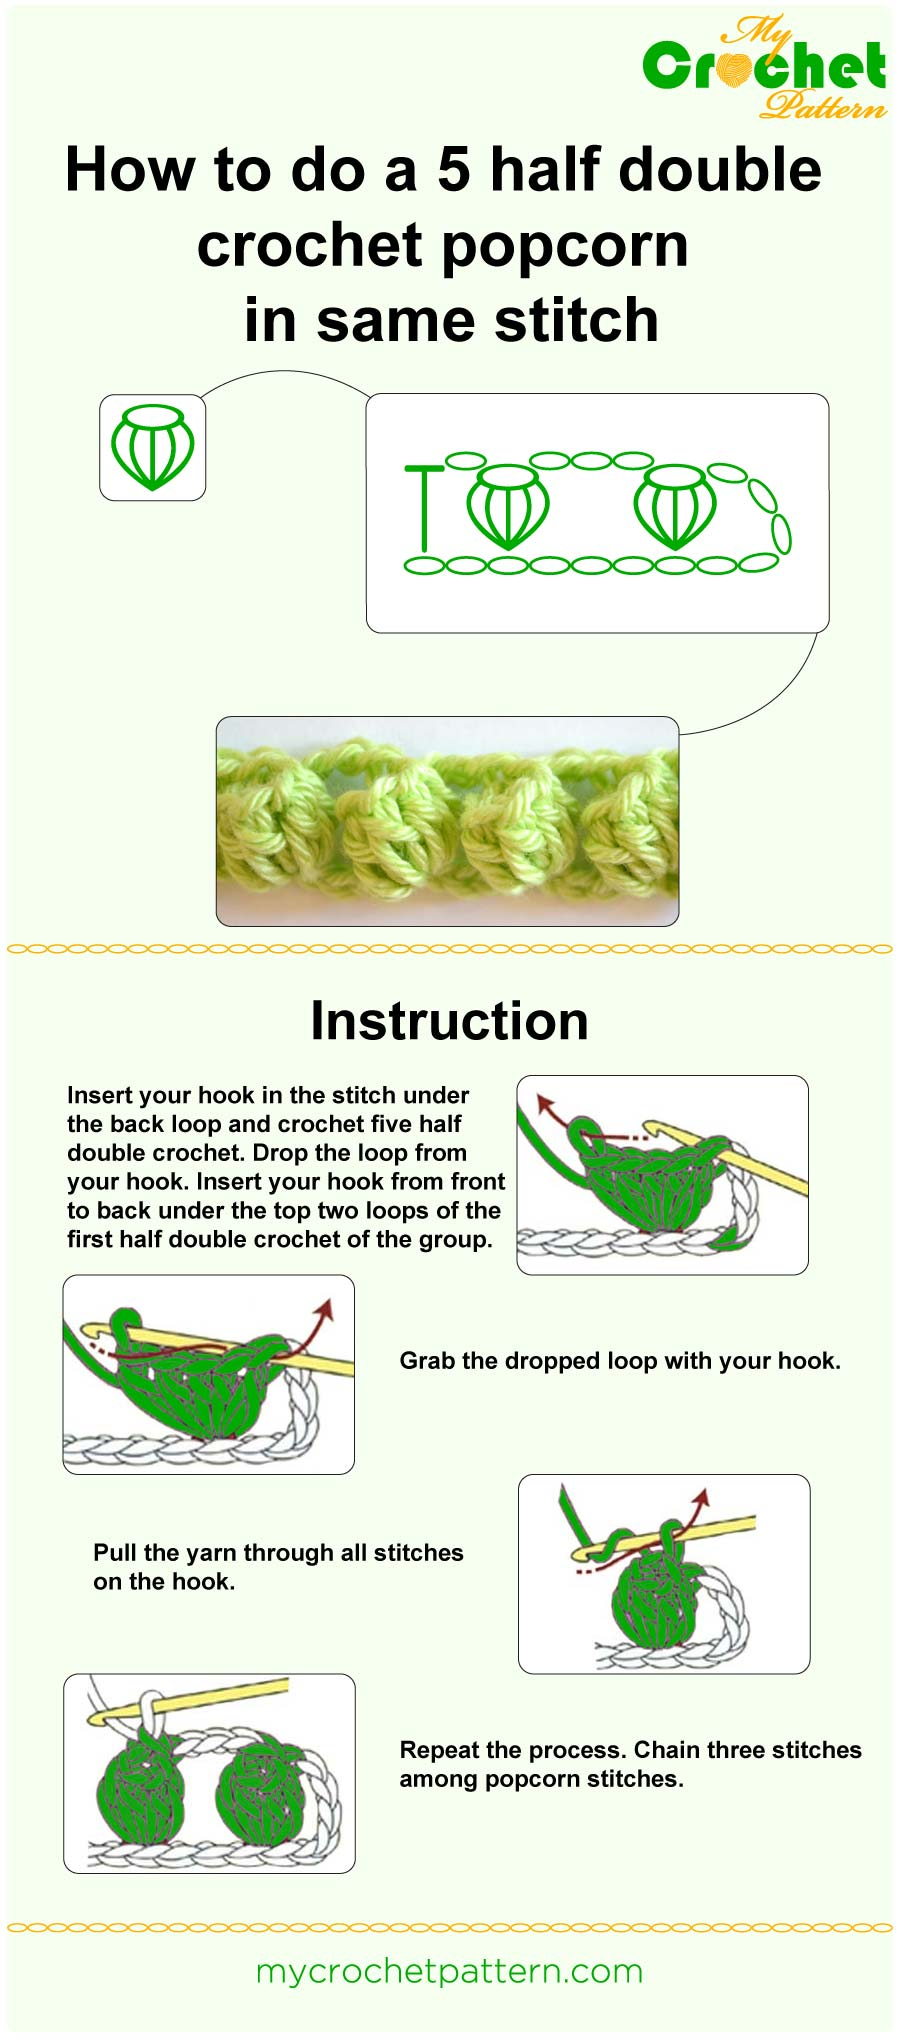 how to do a 5 half double crochet popcorn in same stitch - infographic